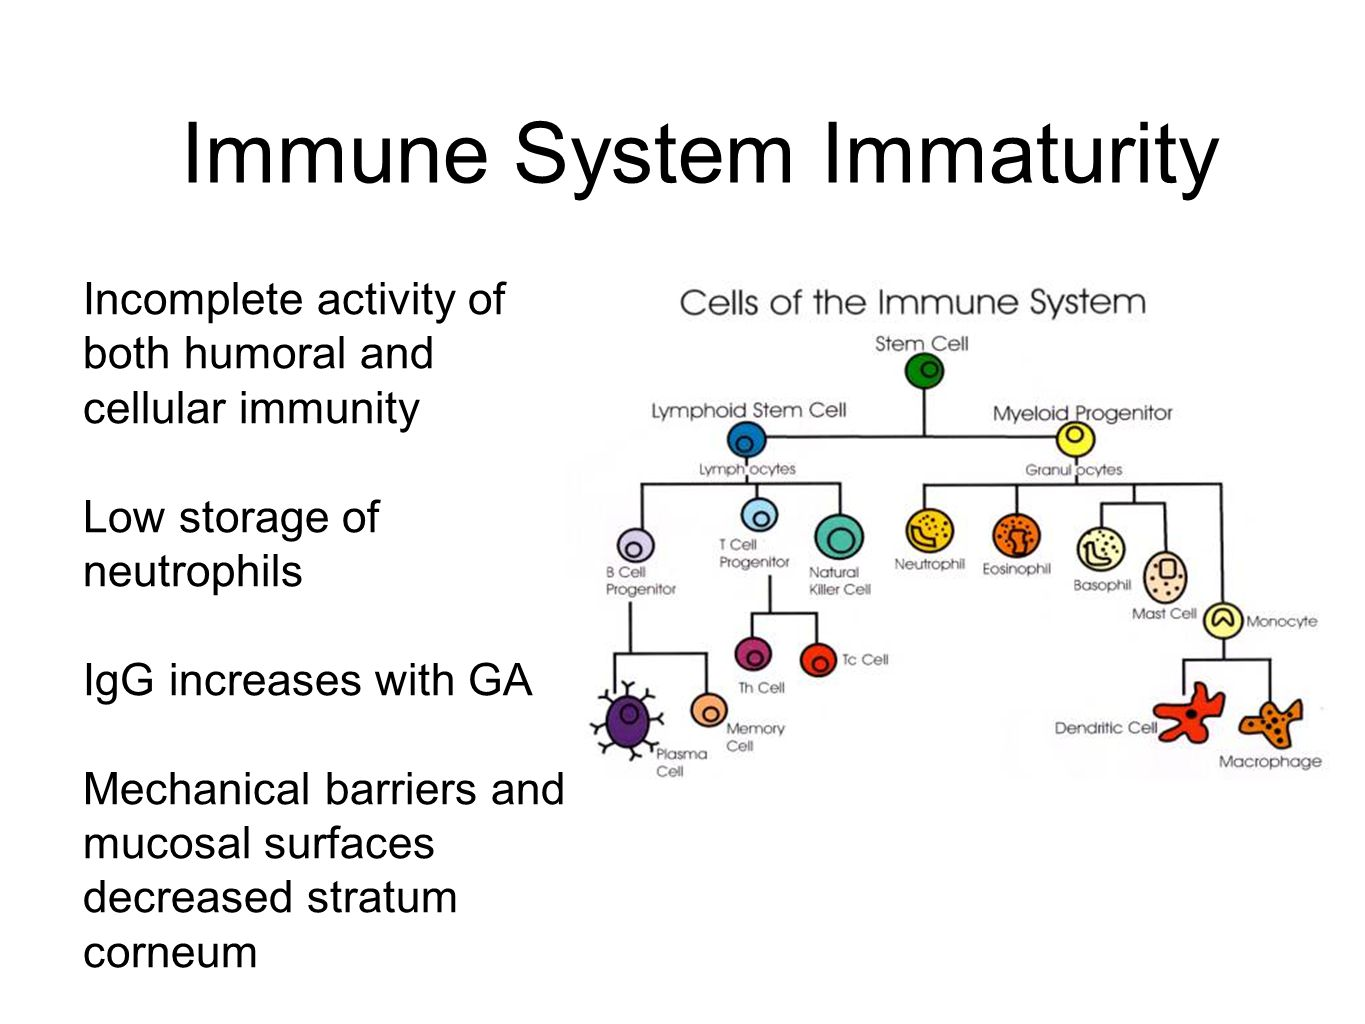 Immune System Immaturity Incomplete activity of both humoral and cellular immunity Low storage of neutrophils IgG increases with GA Mechanical barriers and mucosal surfaces decreased stratum corneum